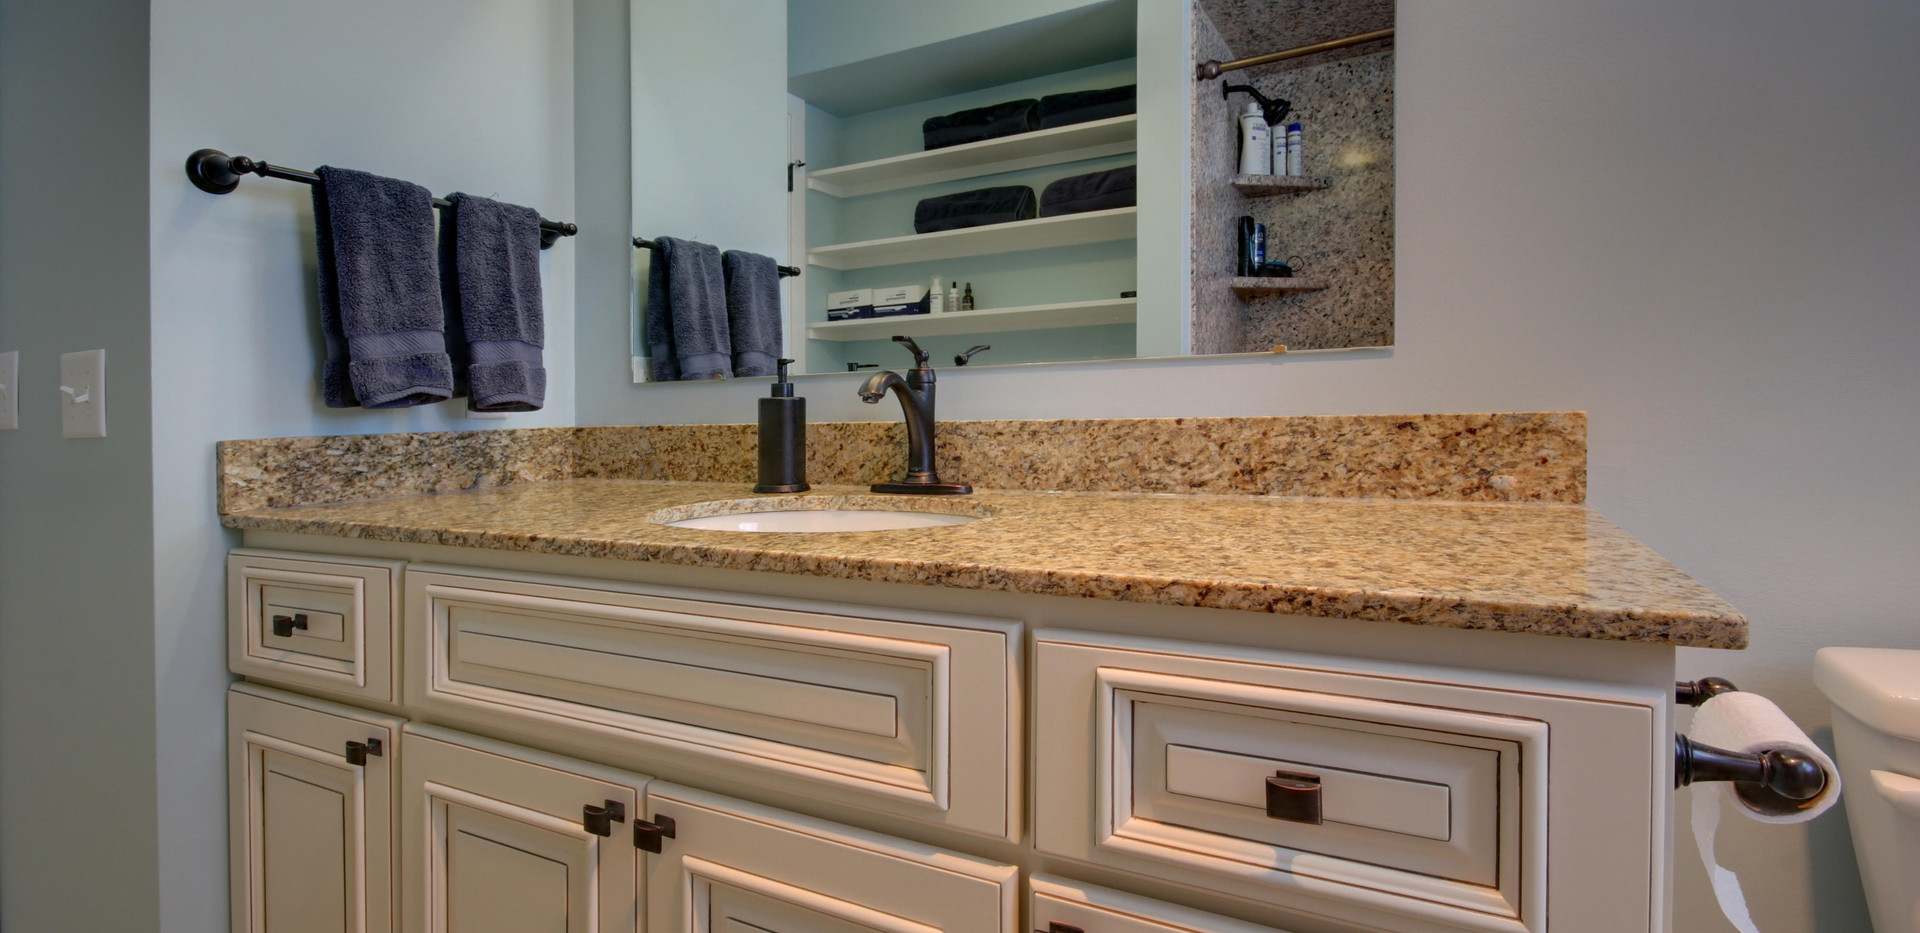 Jenison bathroom remodel with white vanity and granite counter top